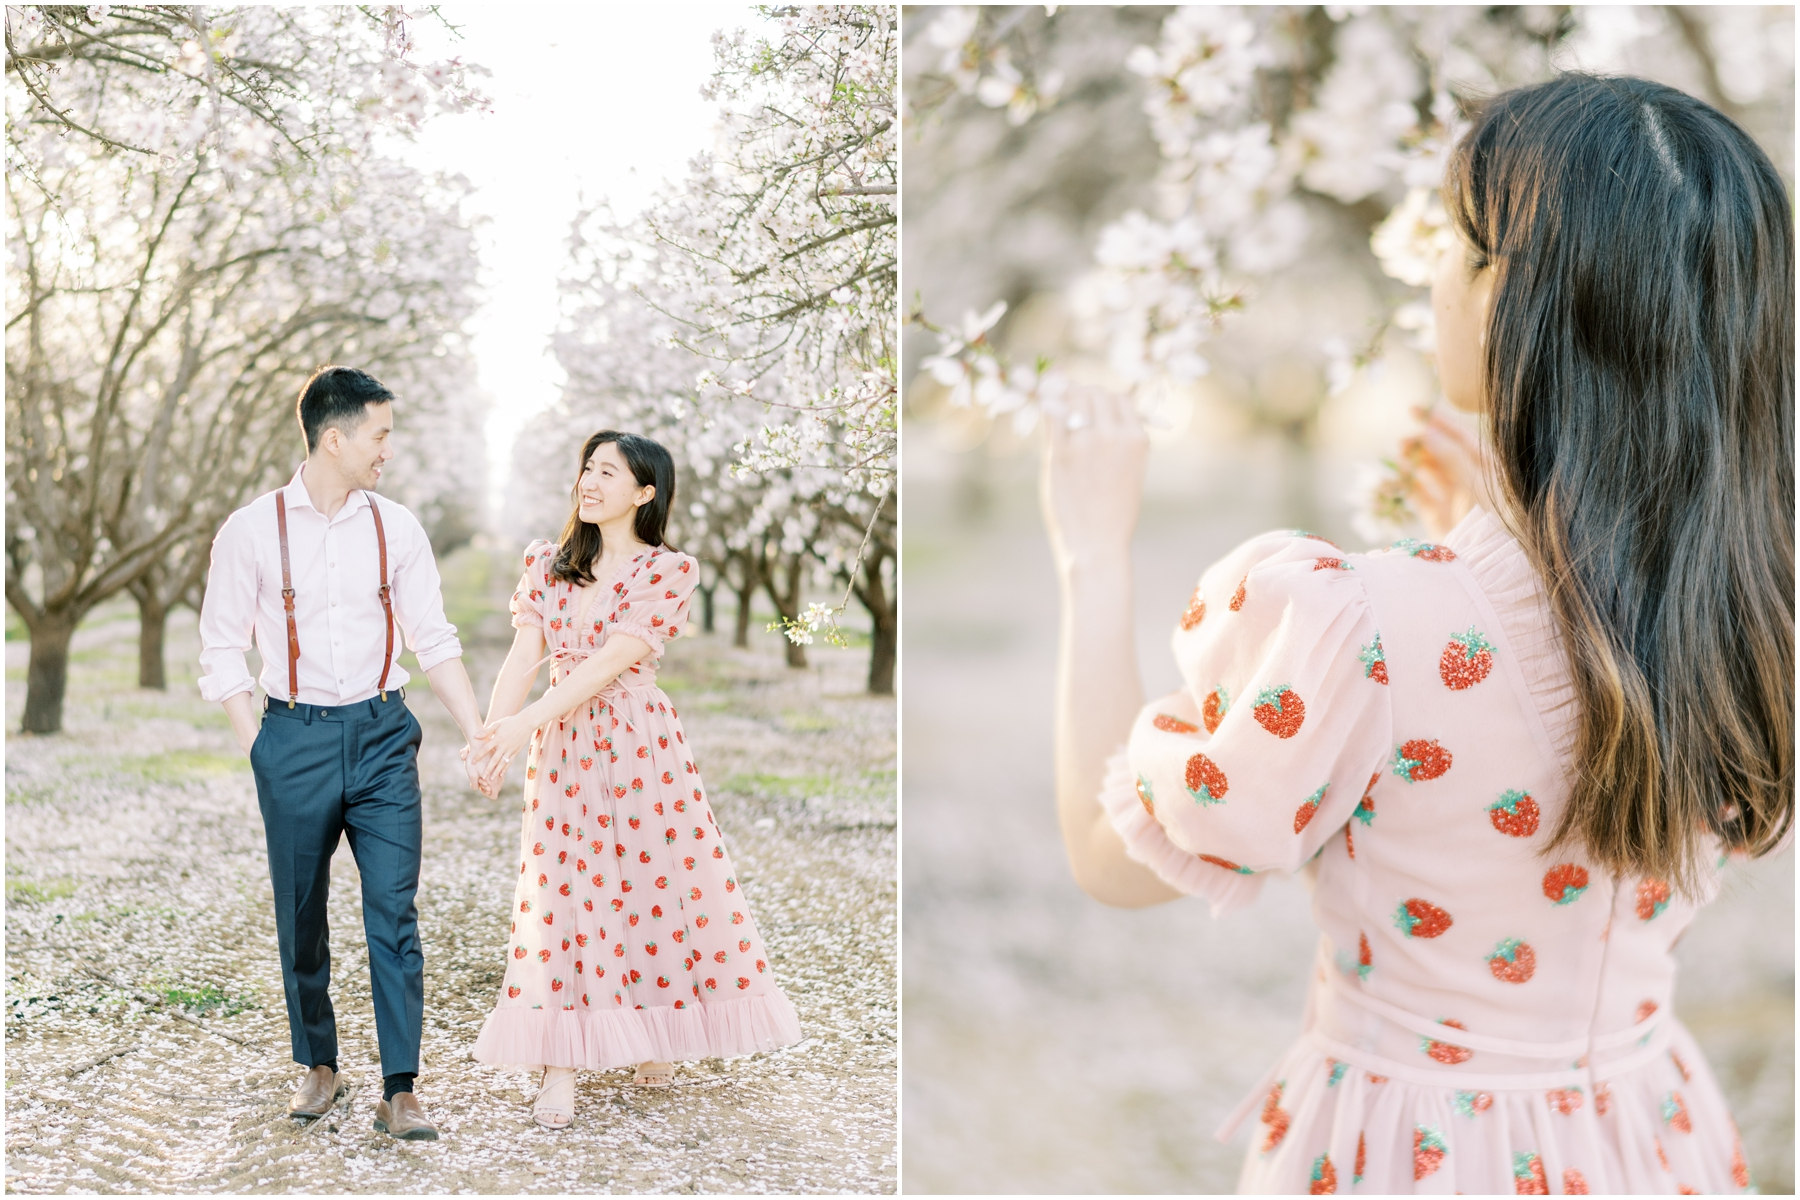 dreamy almond orchard engagement photos with petals with california photographer, sakura cherry blossom japan inspired engagement photos